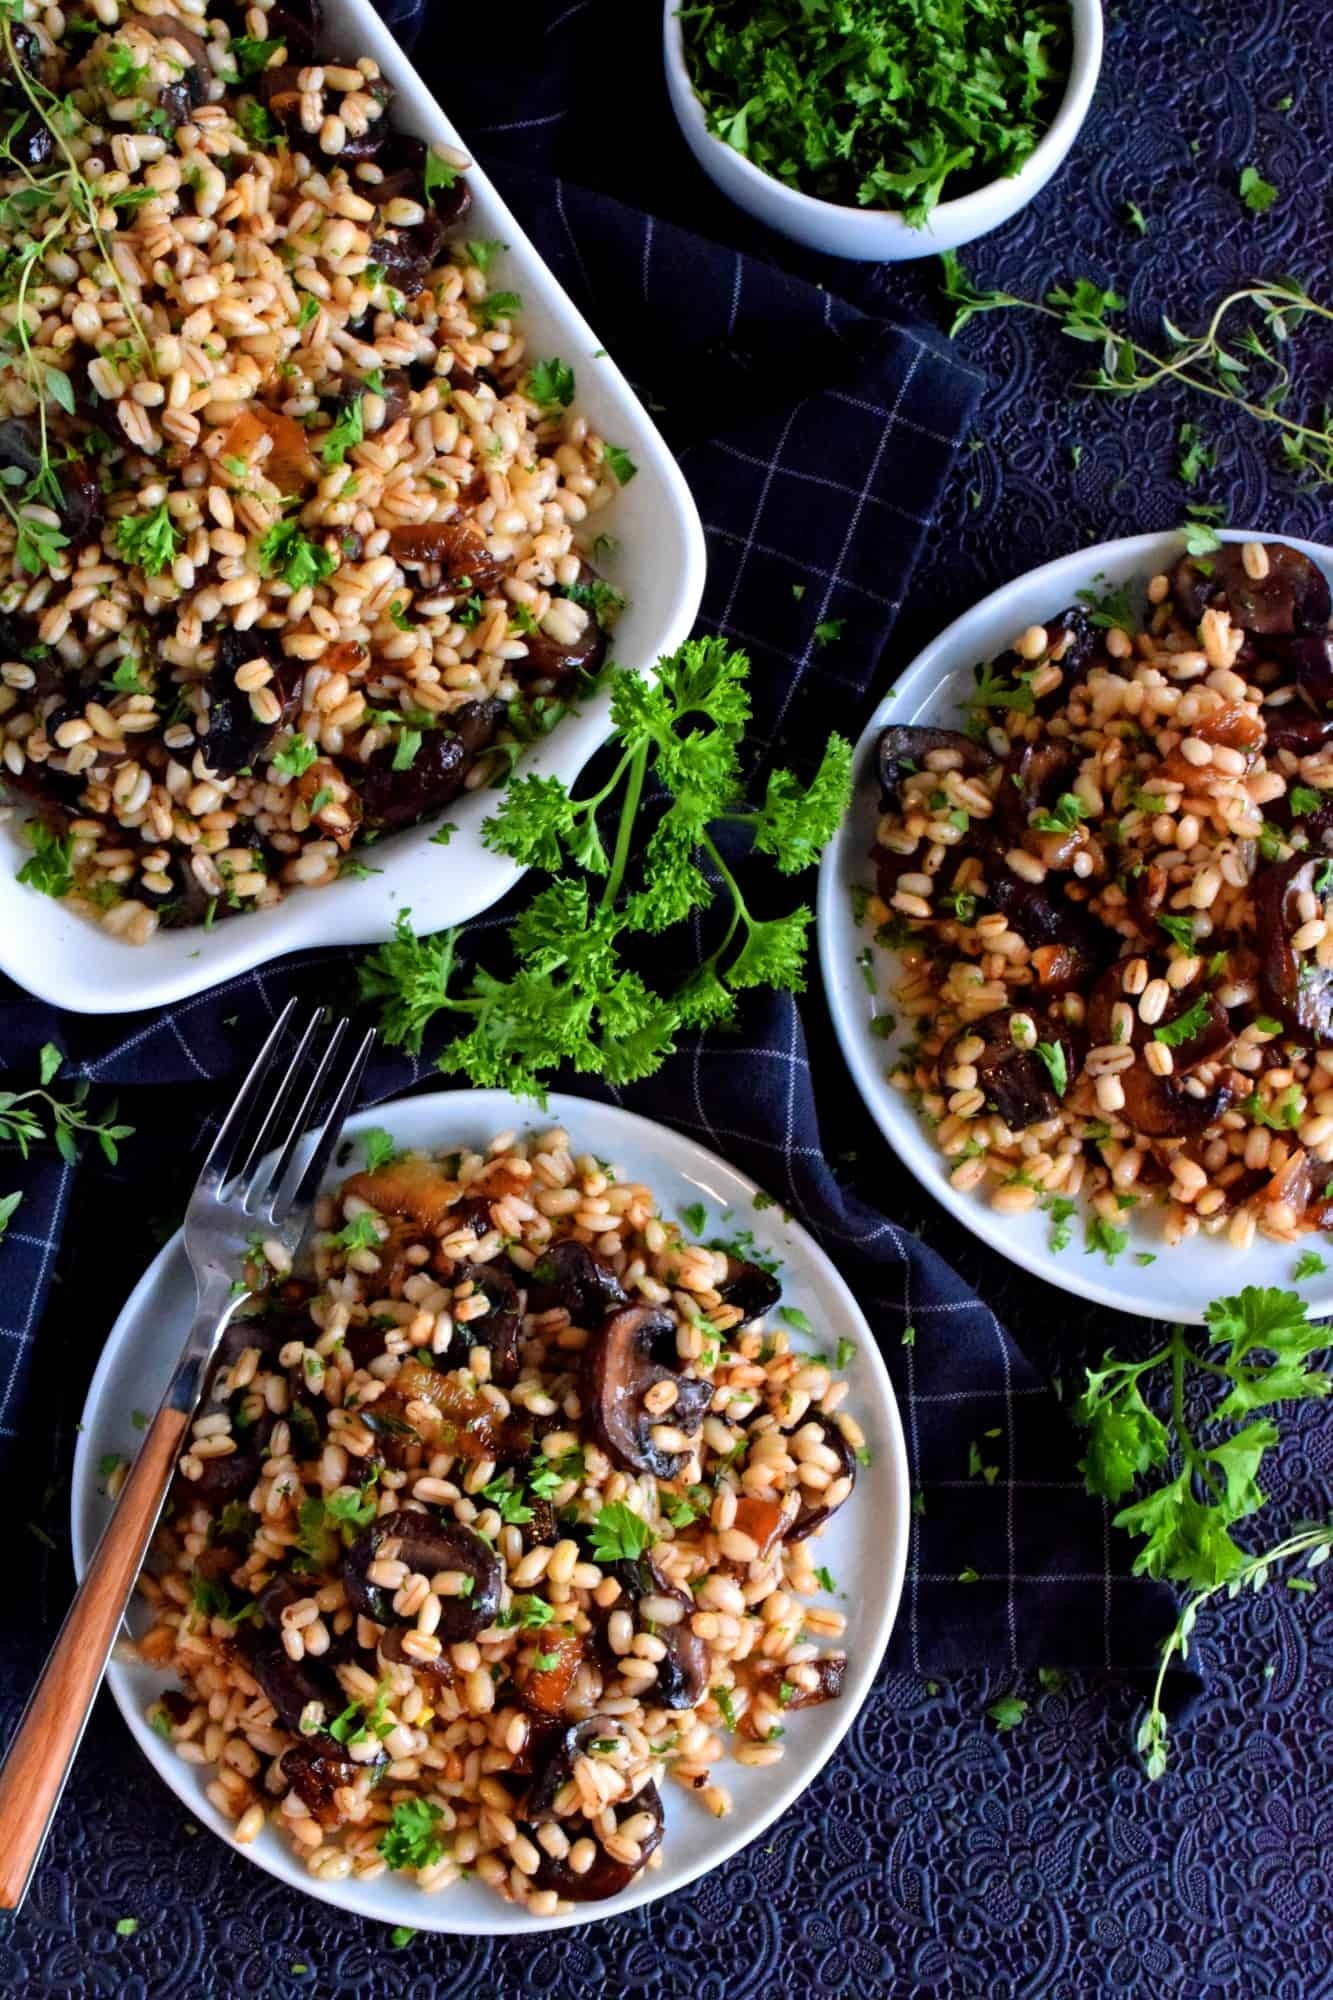 Warm Barley Salad With Buttered Mushrooms And Shallots